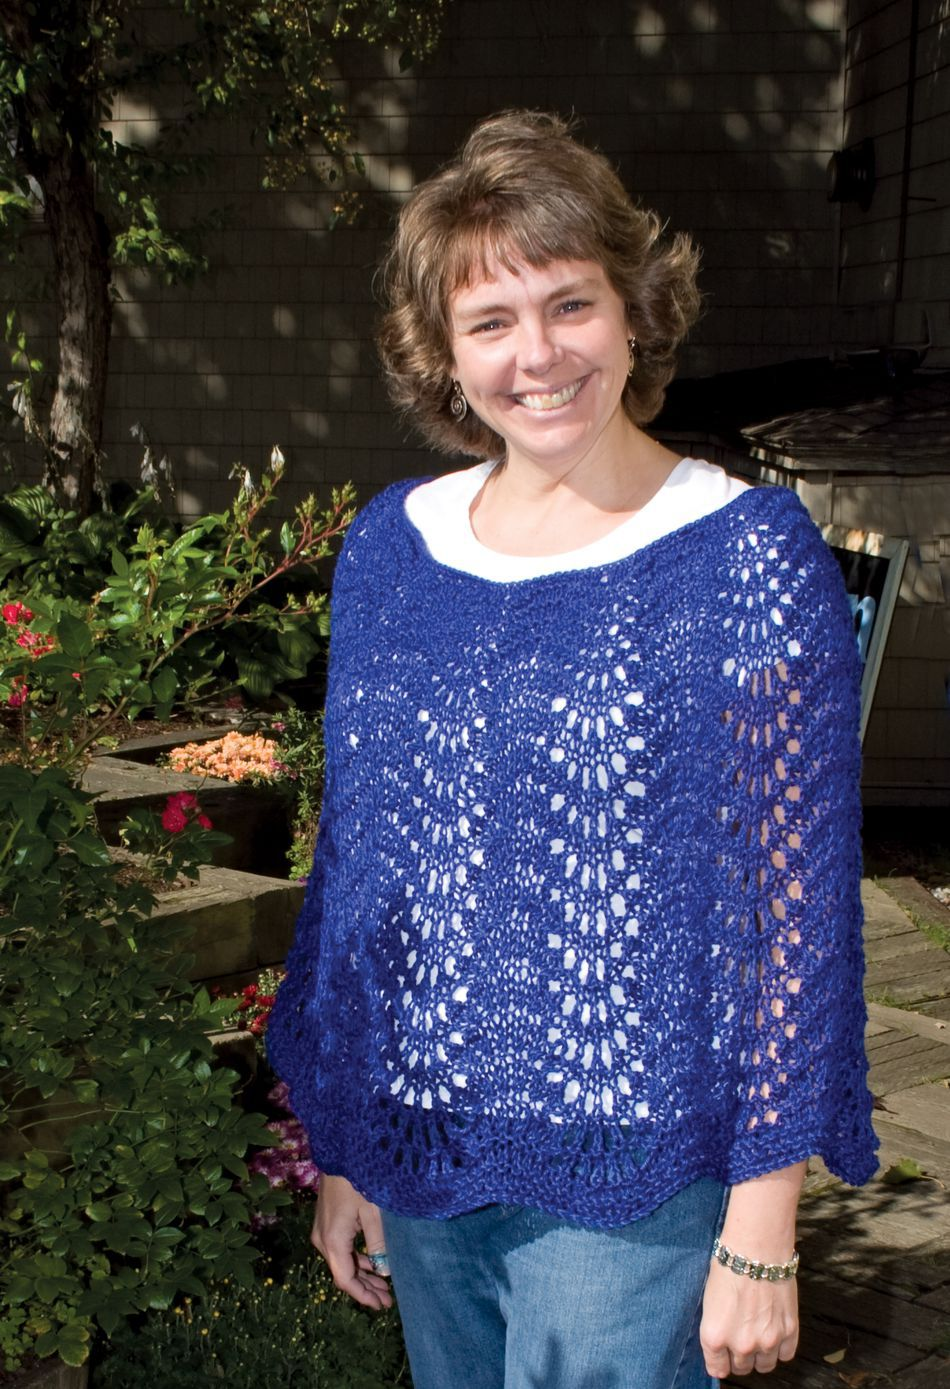 Lace Poncho Knitting Pattern : Easy Lace Poncho by Knitting Pure and Simple, Knitting Pattern - Halcyon Yarn